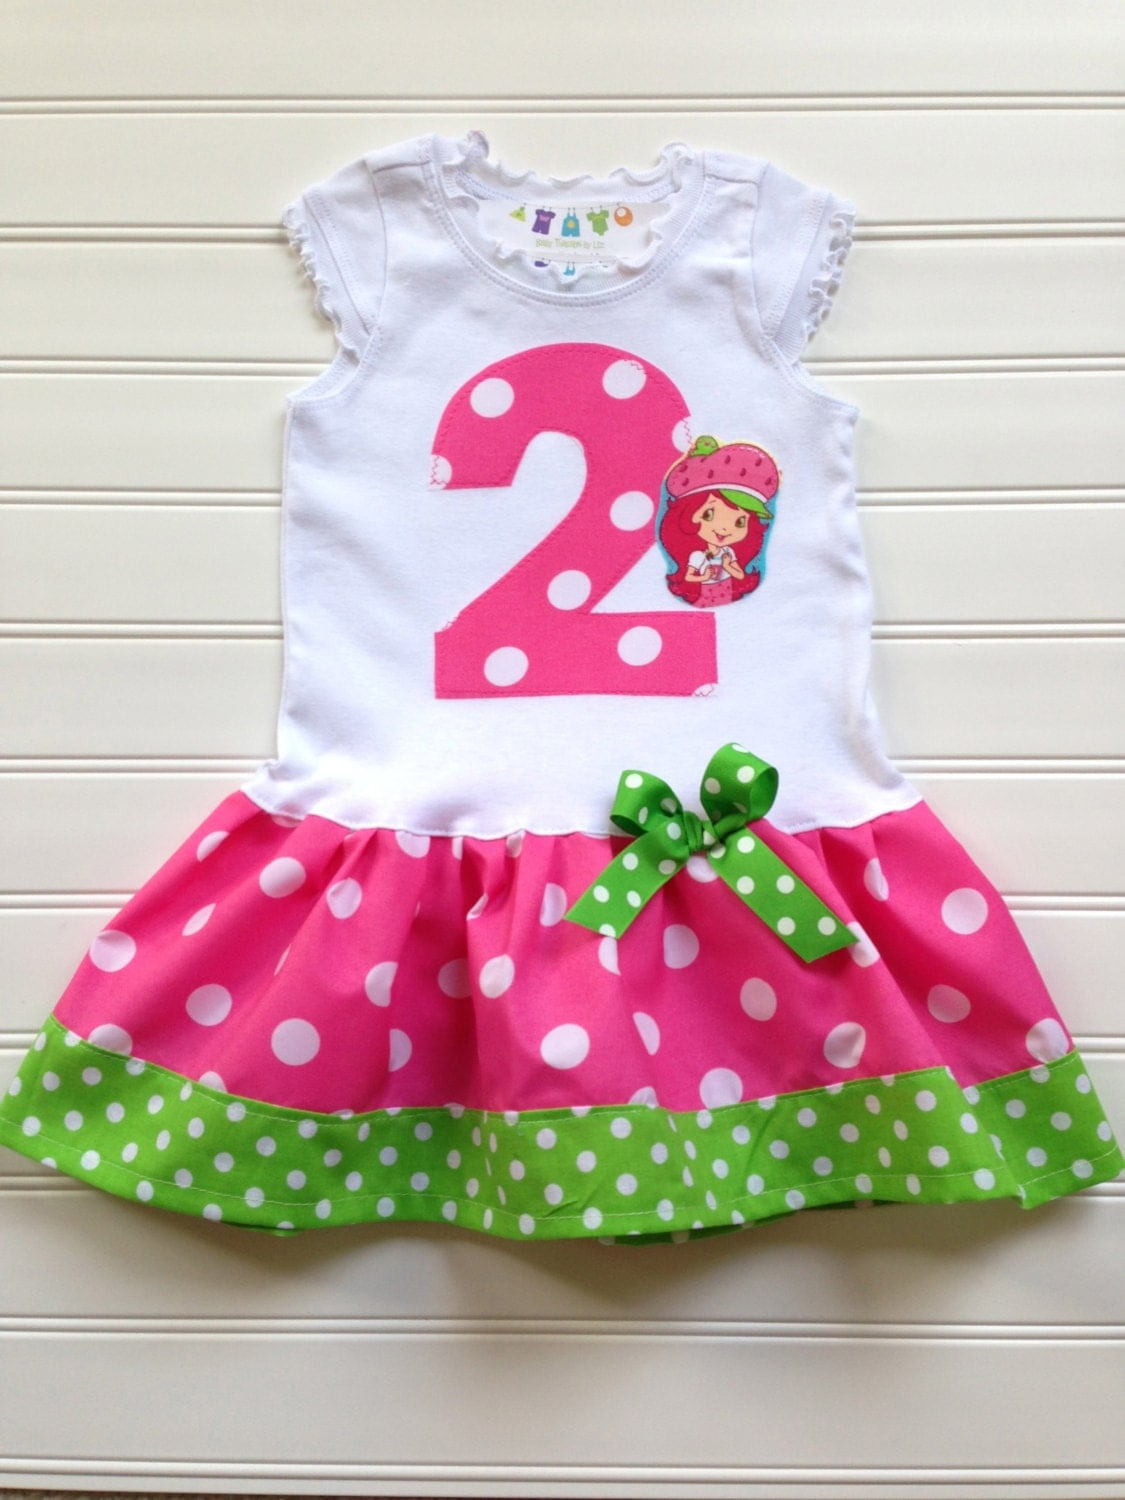 Buy low price, high quality strawberry dress baby with worldwide shipping on forex-trade1.ga